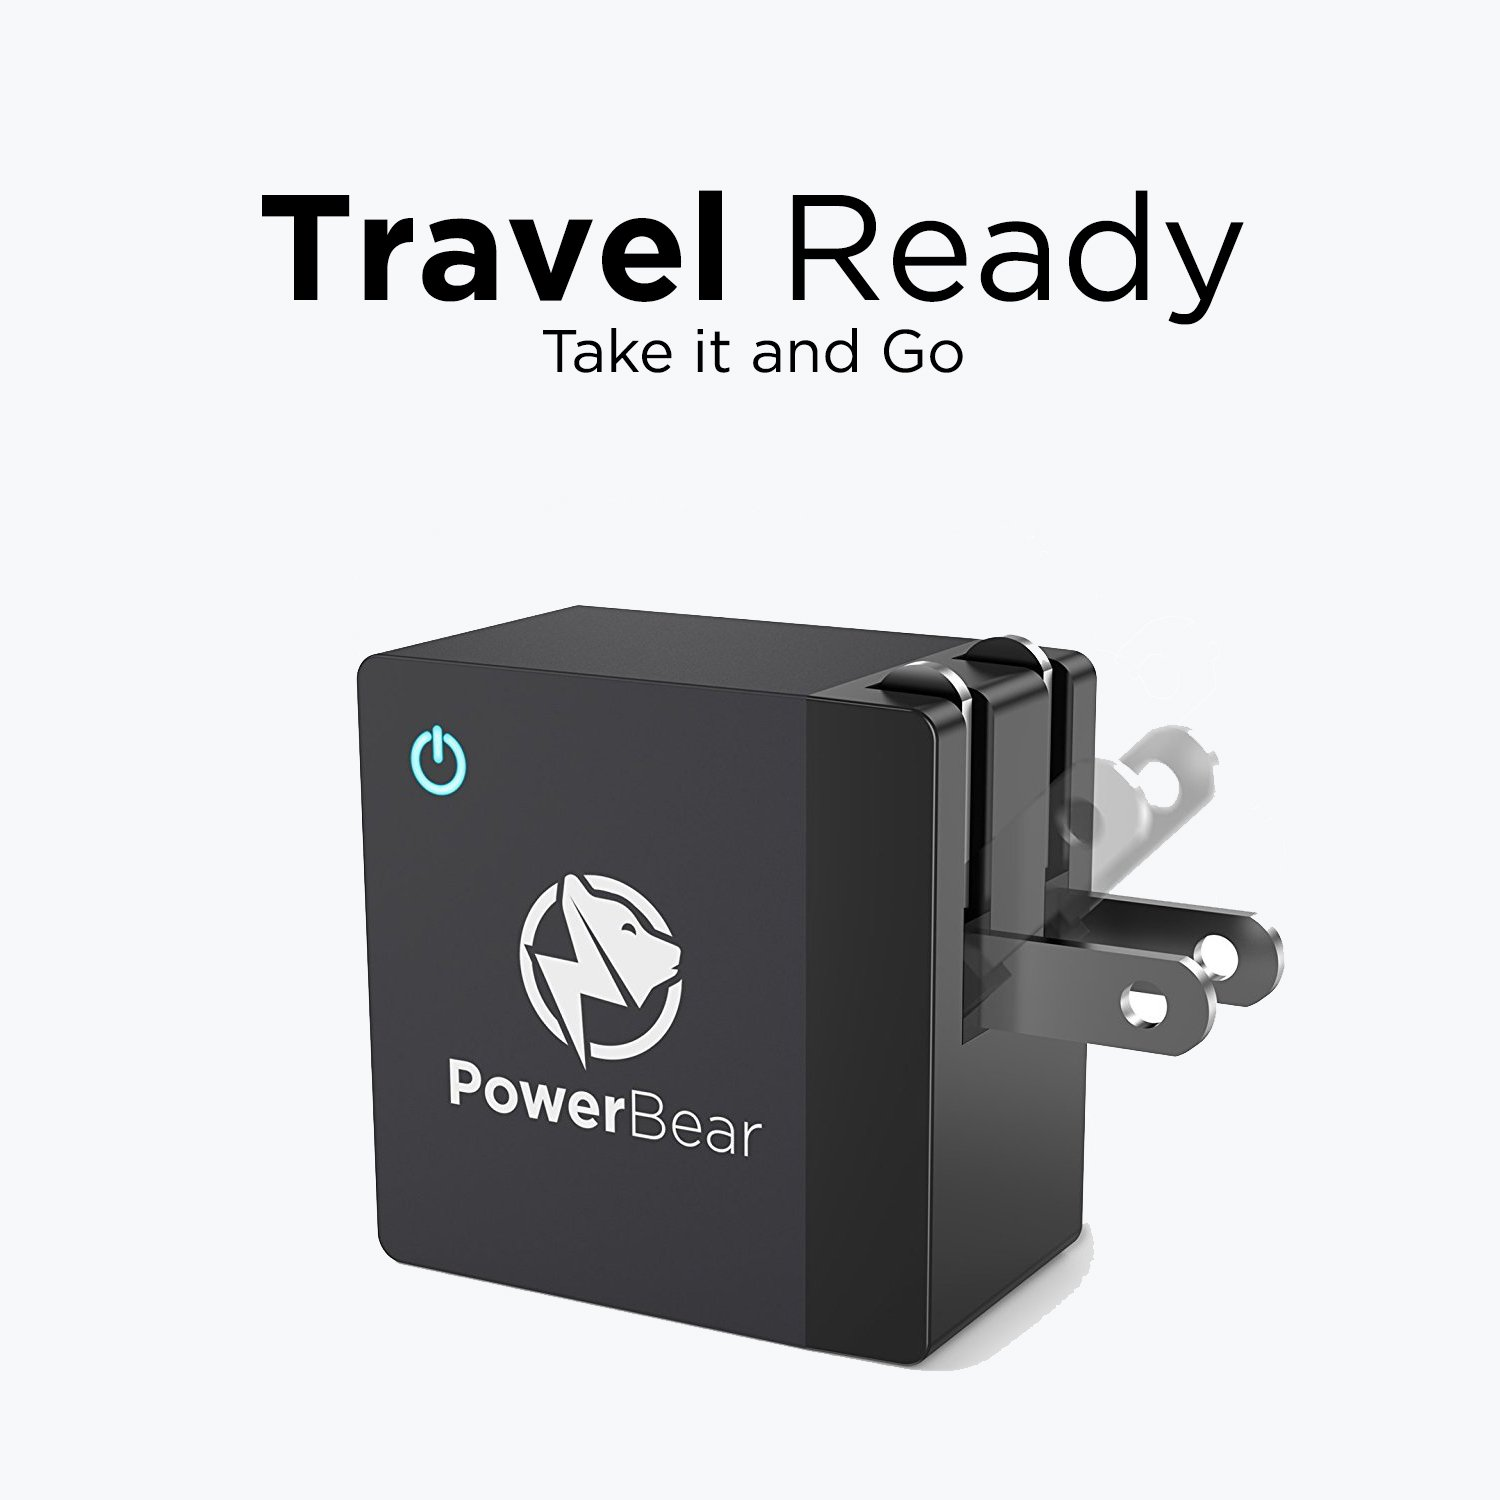 PowerBear USB Charger [18W] Qualcomm 3.0 Fast Charger, USB Wall Charger, Fast Charger, Android Charger for Samsung, LG, HTC, iPhone & More with Cable – Black [24 Month Warranty] by PowerBear (Image #5)